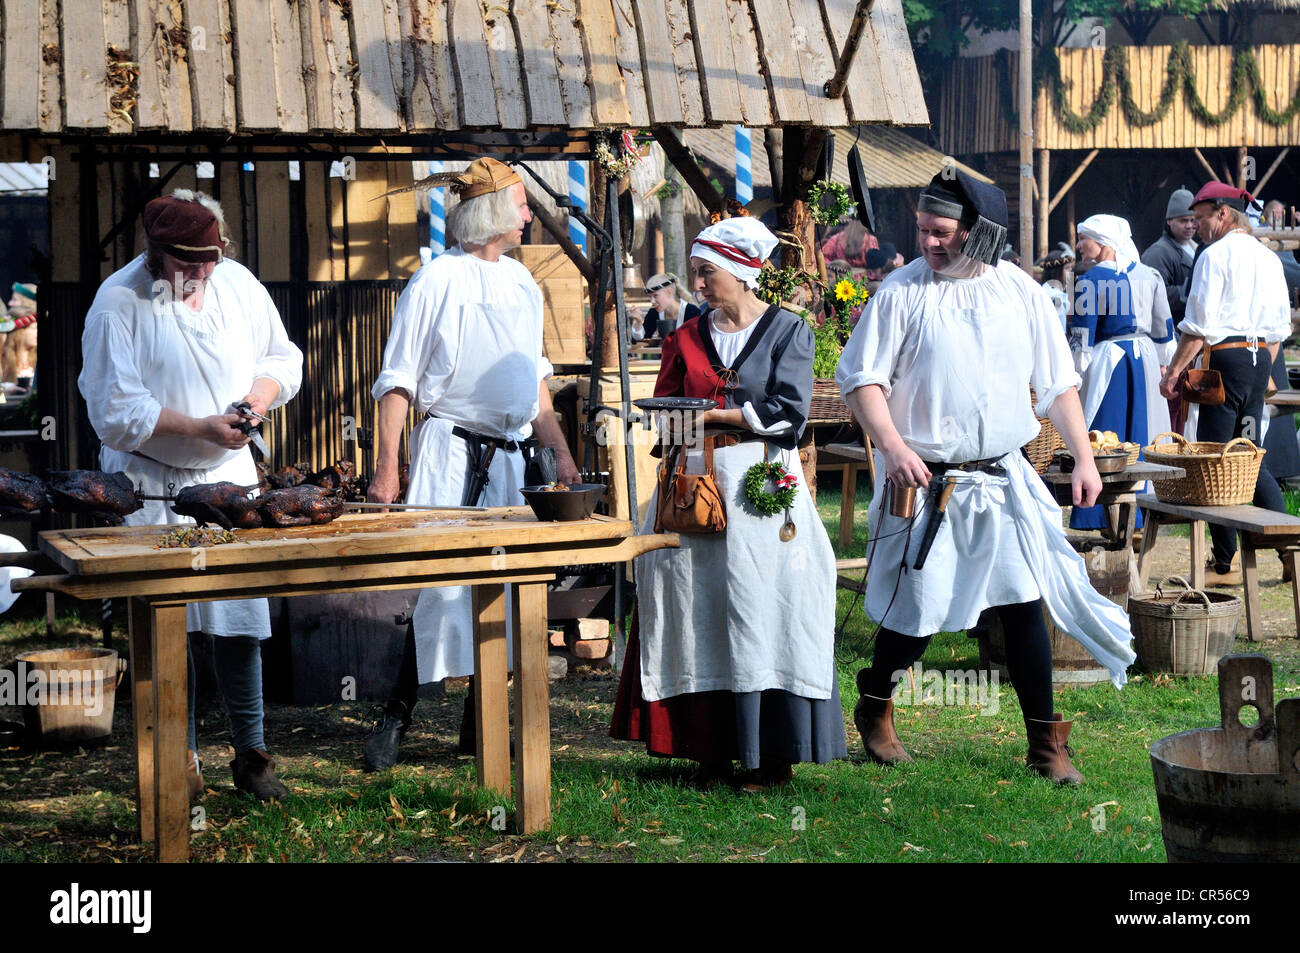 Daily life in a medieval camp during the Landshuter Hochzeit 2009, one of the largest historical pageants in Europe, - Stock Image